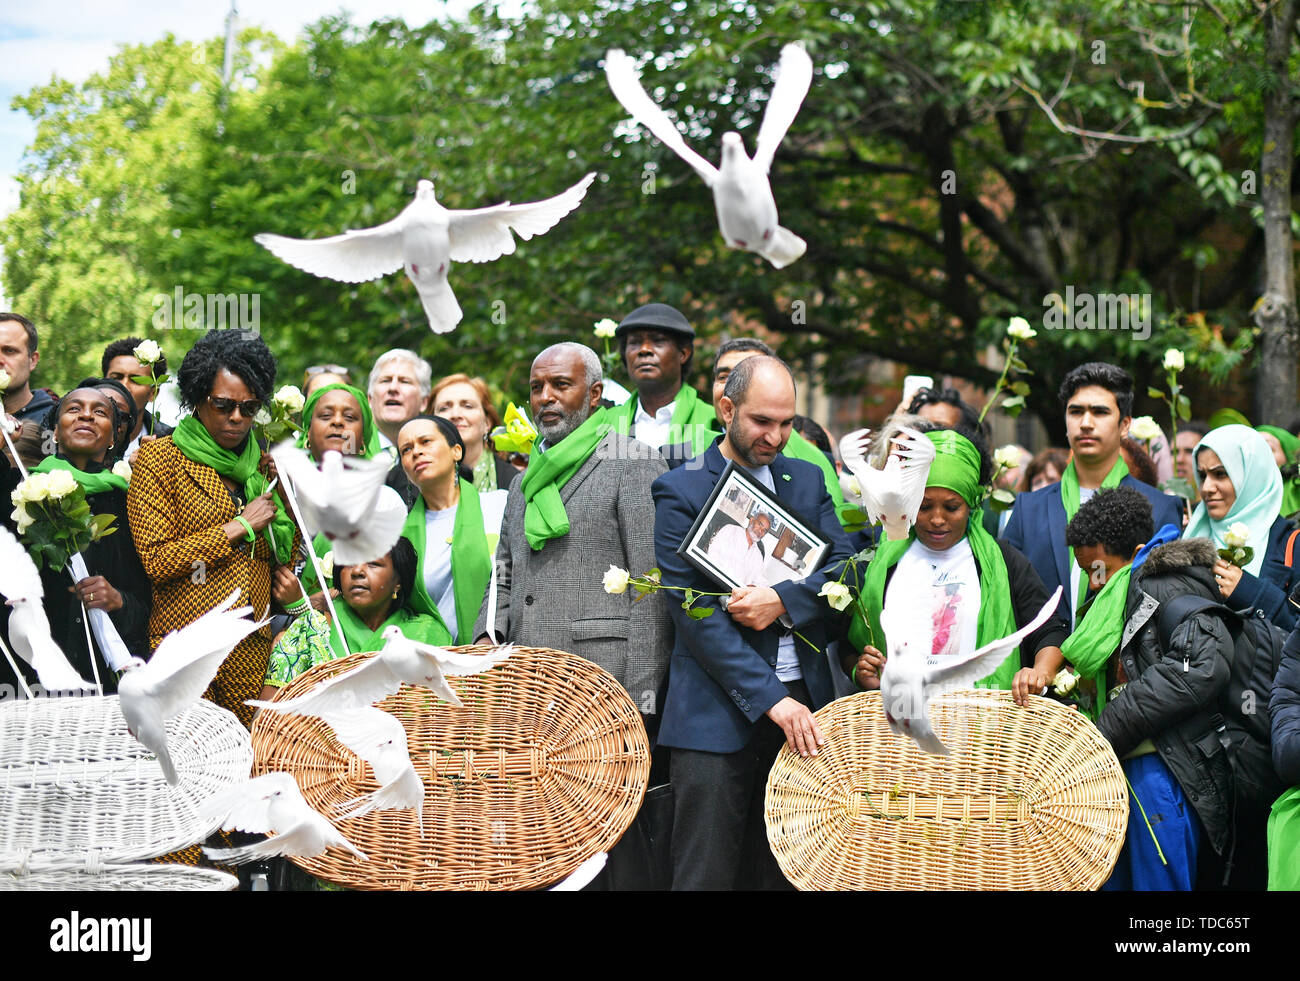 People gather as doves are released outside St Helens church, London, following a service to mark the two-year anniversary of the Grenfell Tower block fire. - Stock Image